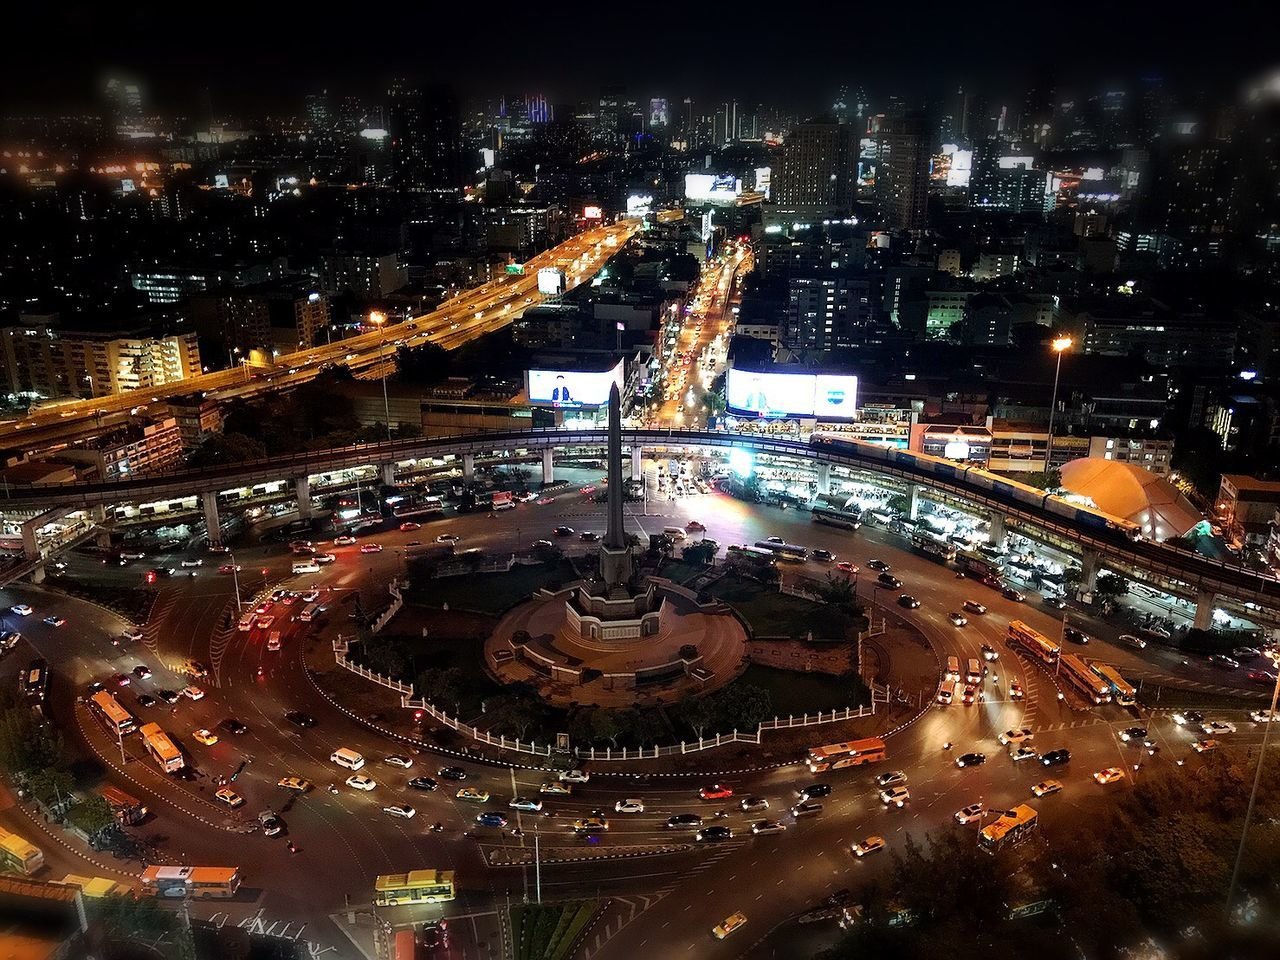 illuminated, night, architecture, city, traffic, built structure, high angle view, building exterior, light trail, connection, traffic circle, outdoors, road, cityscape, no people, high street